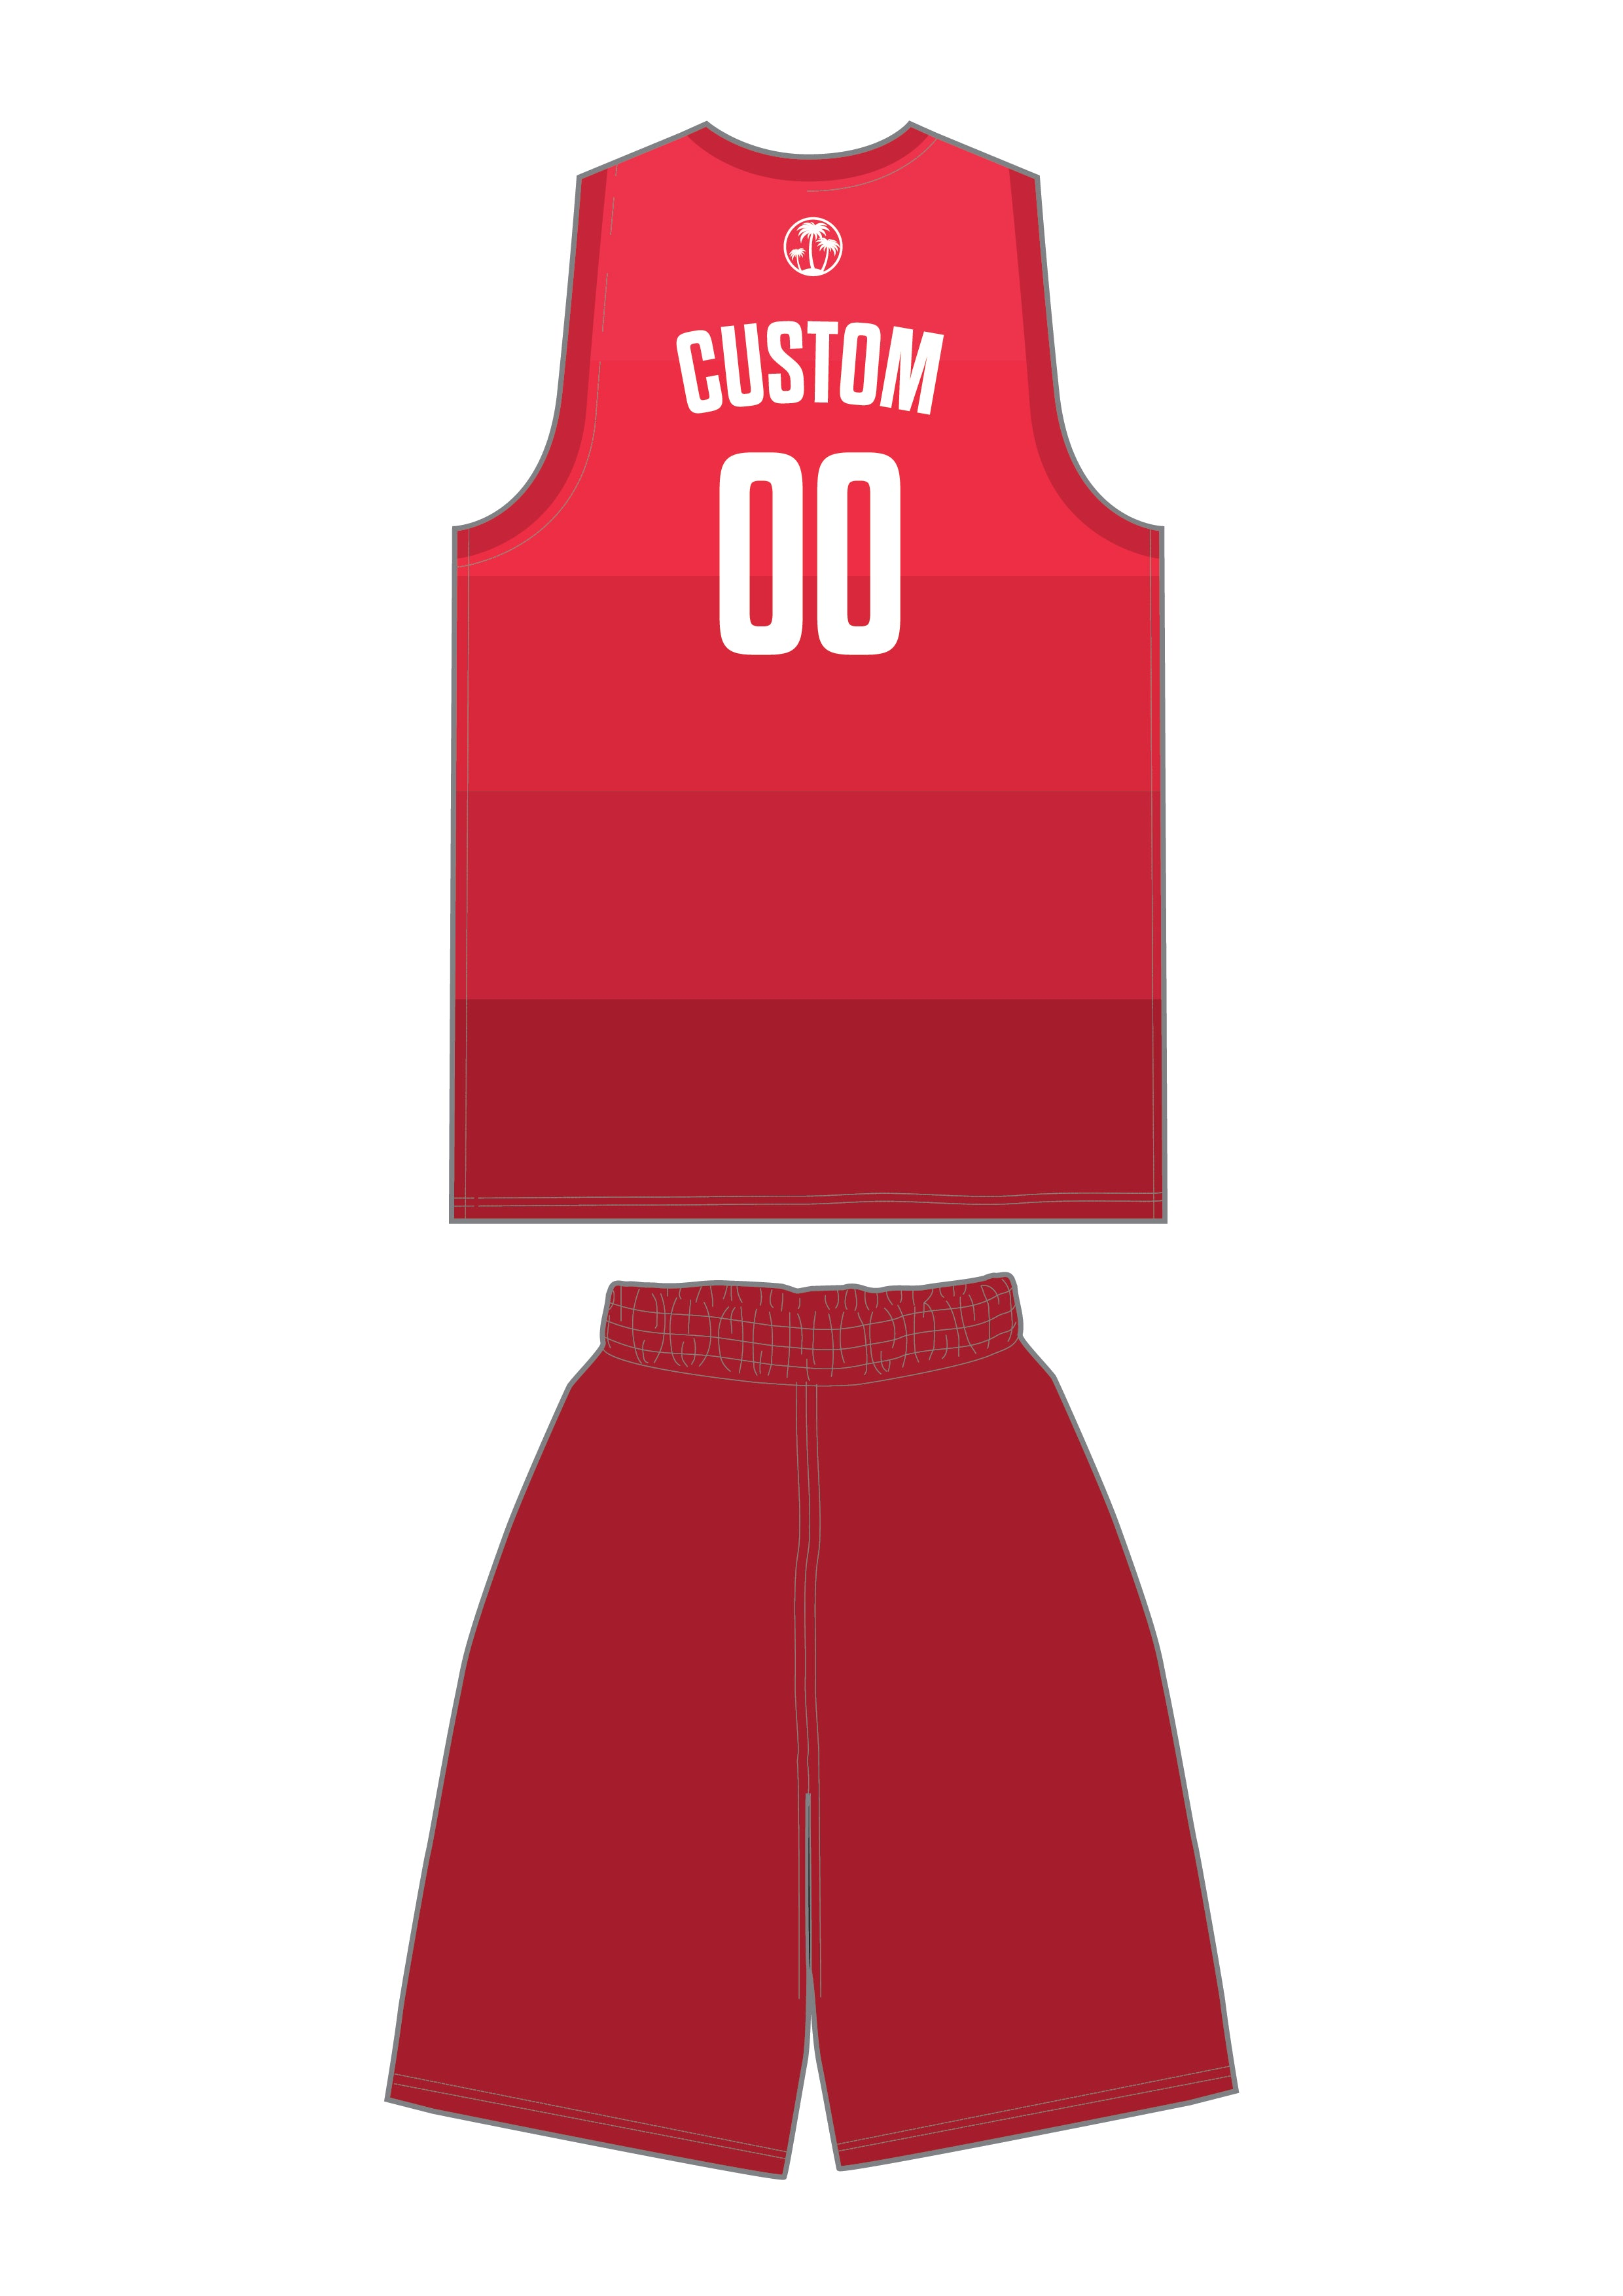 SUMMER SERIES CUSTOM KIT - RED